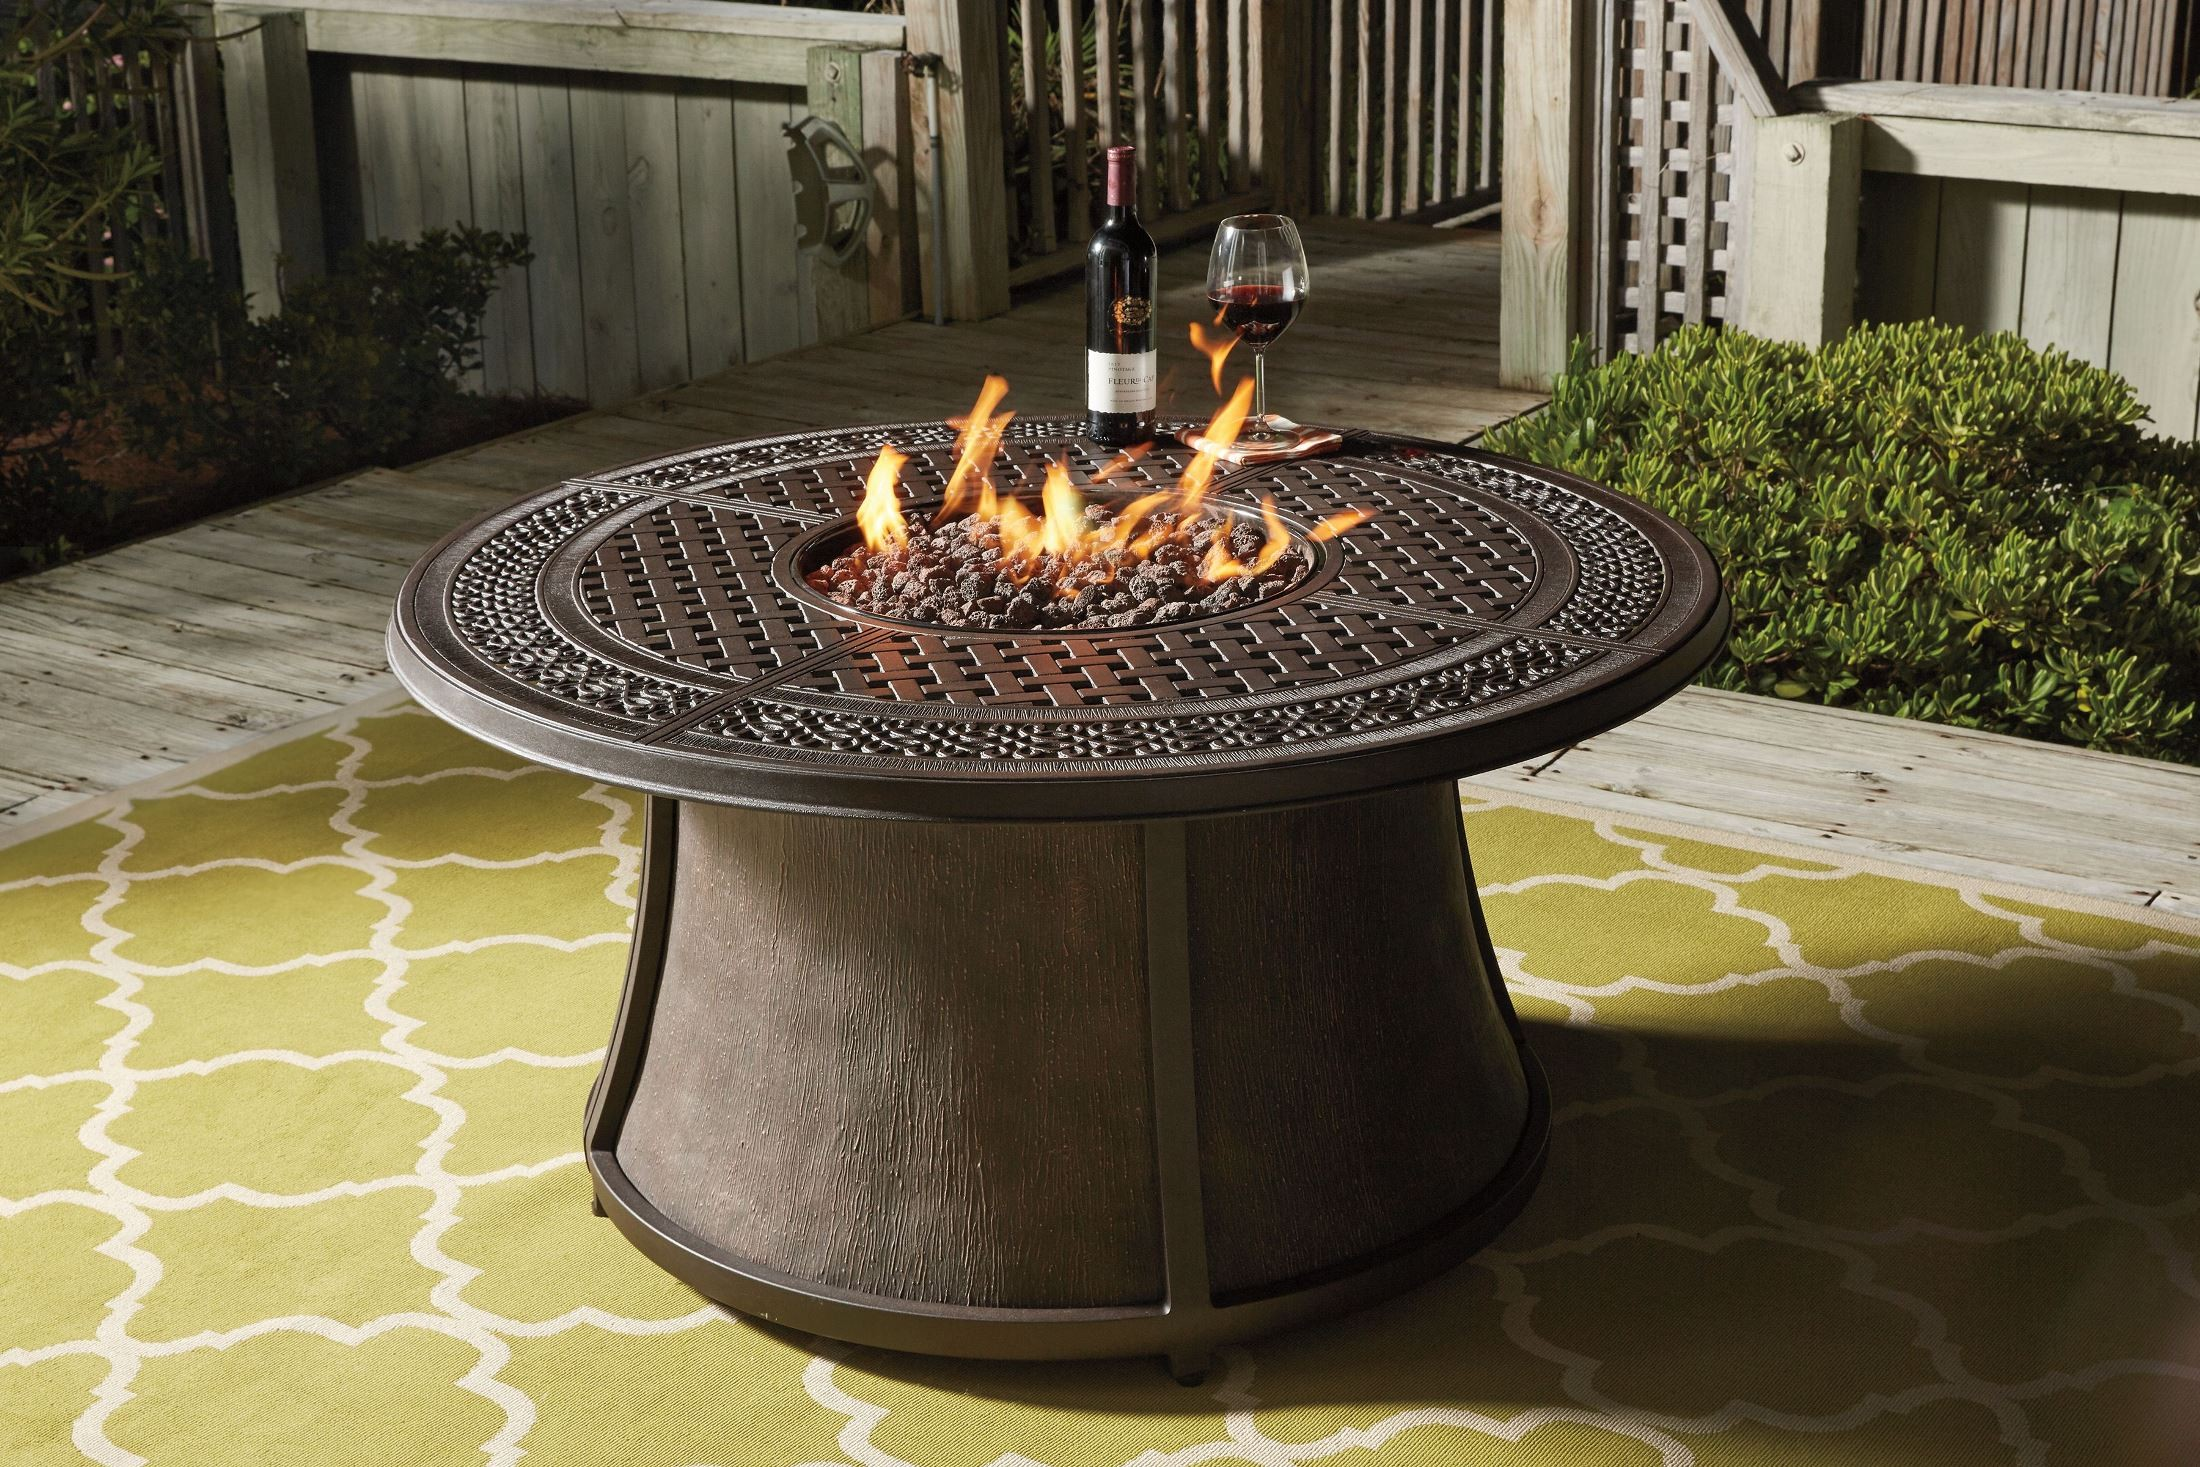 Burnella Round Fire Pit Outdoor Dining Set, P456-776T-776B ... on Outdoor Dining Tables With Fire Pit id=81421